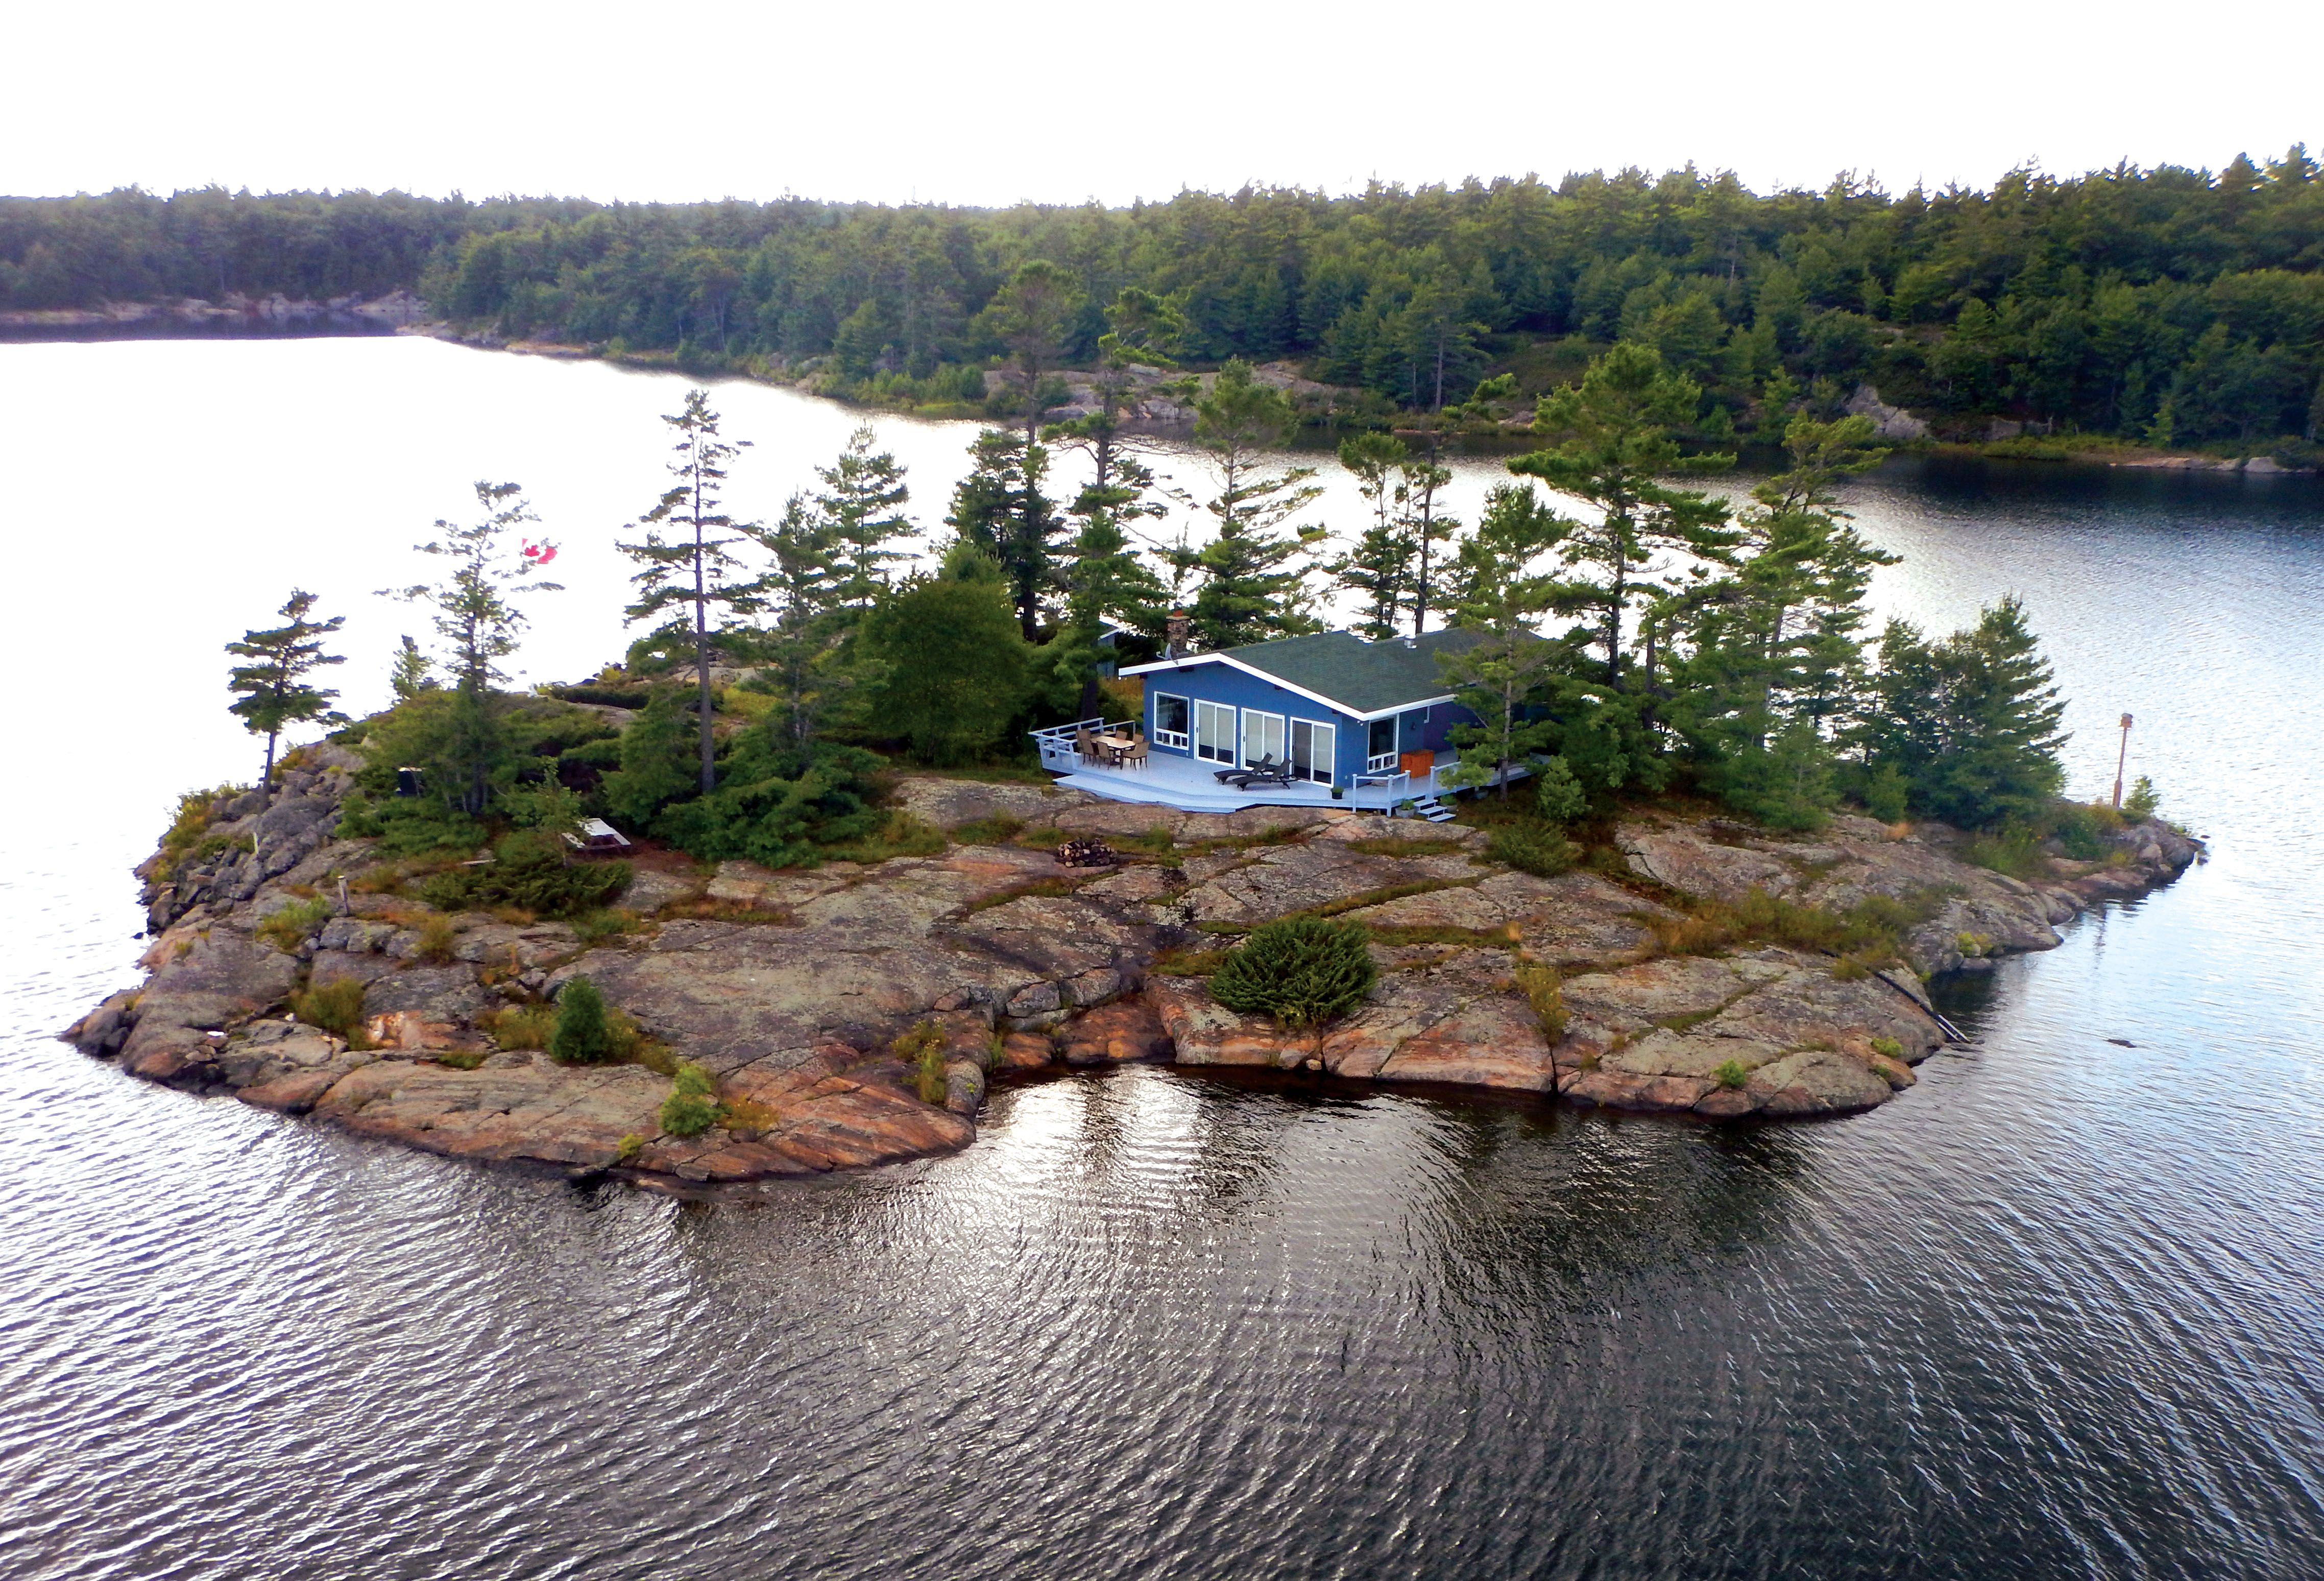 Deepwater island ontario canada private islands for rent for Big island cabins